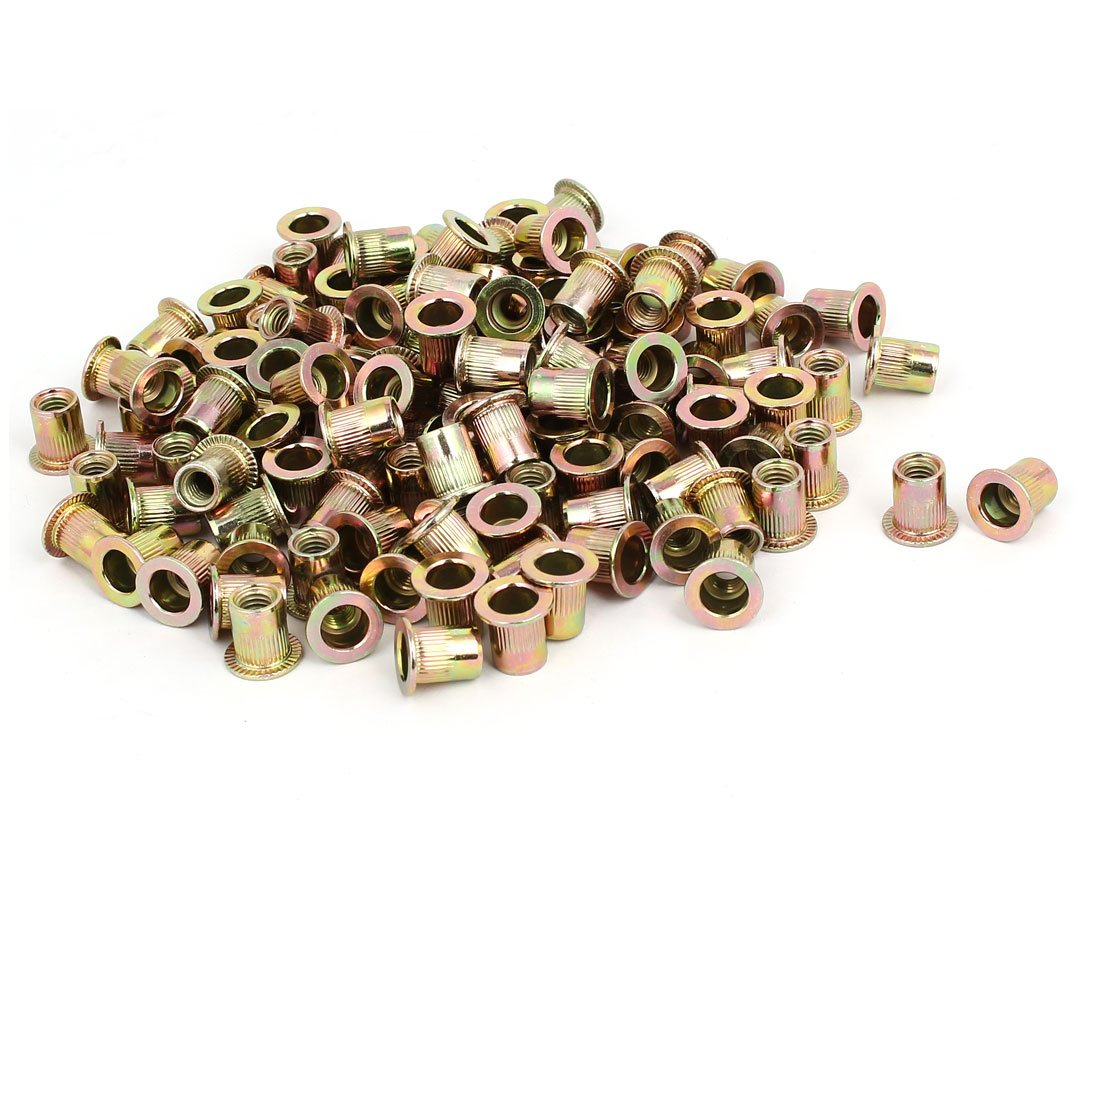 uxcell M6x12mm Zinc Plated Knurled Flat Head Rivet Nuts Insert Nutsert Bronze Tone 130pcs